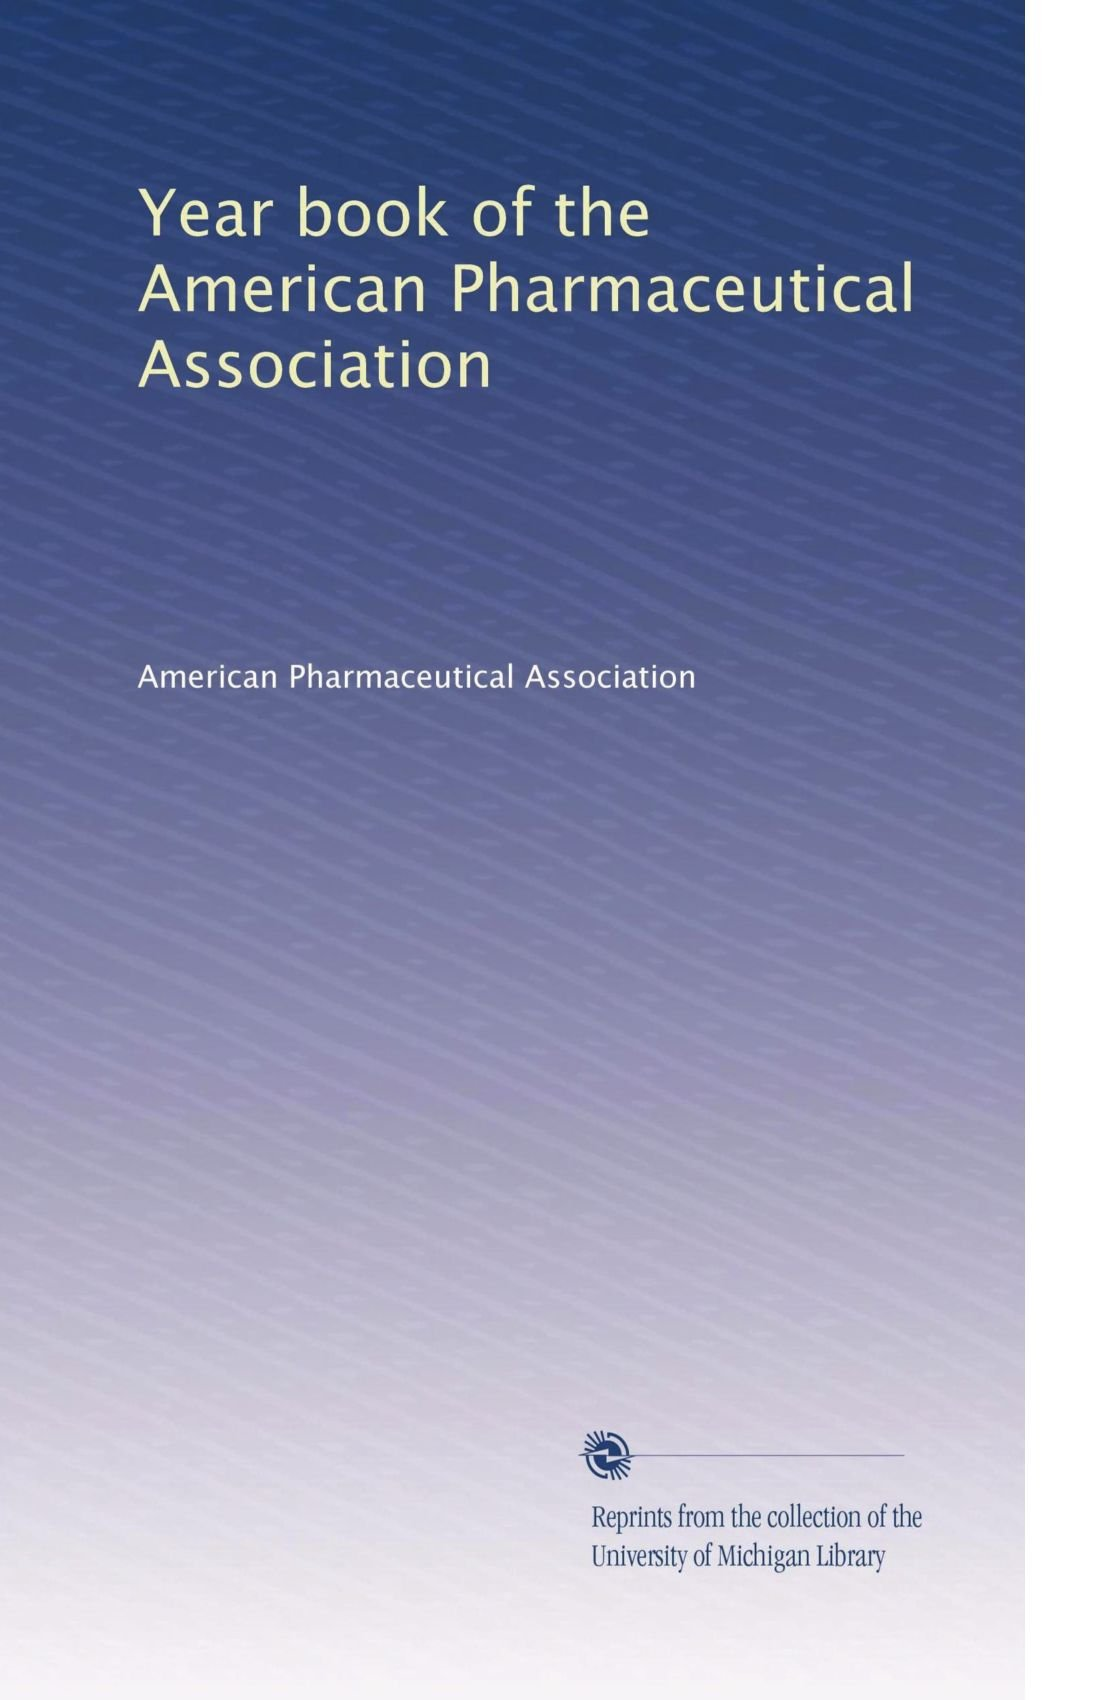 Download Year book of the American Pharmaceutical Association (Volume 6) ebook